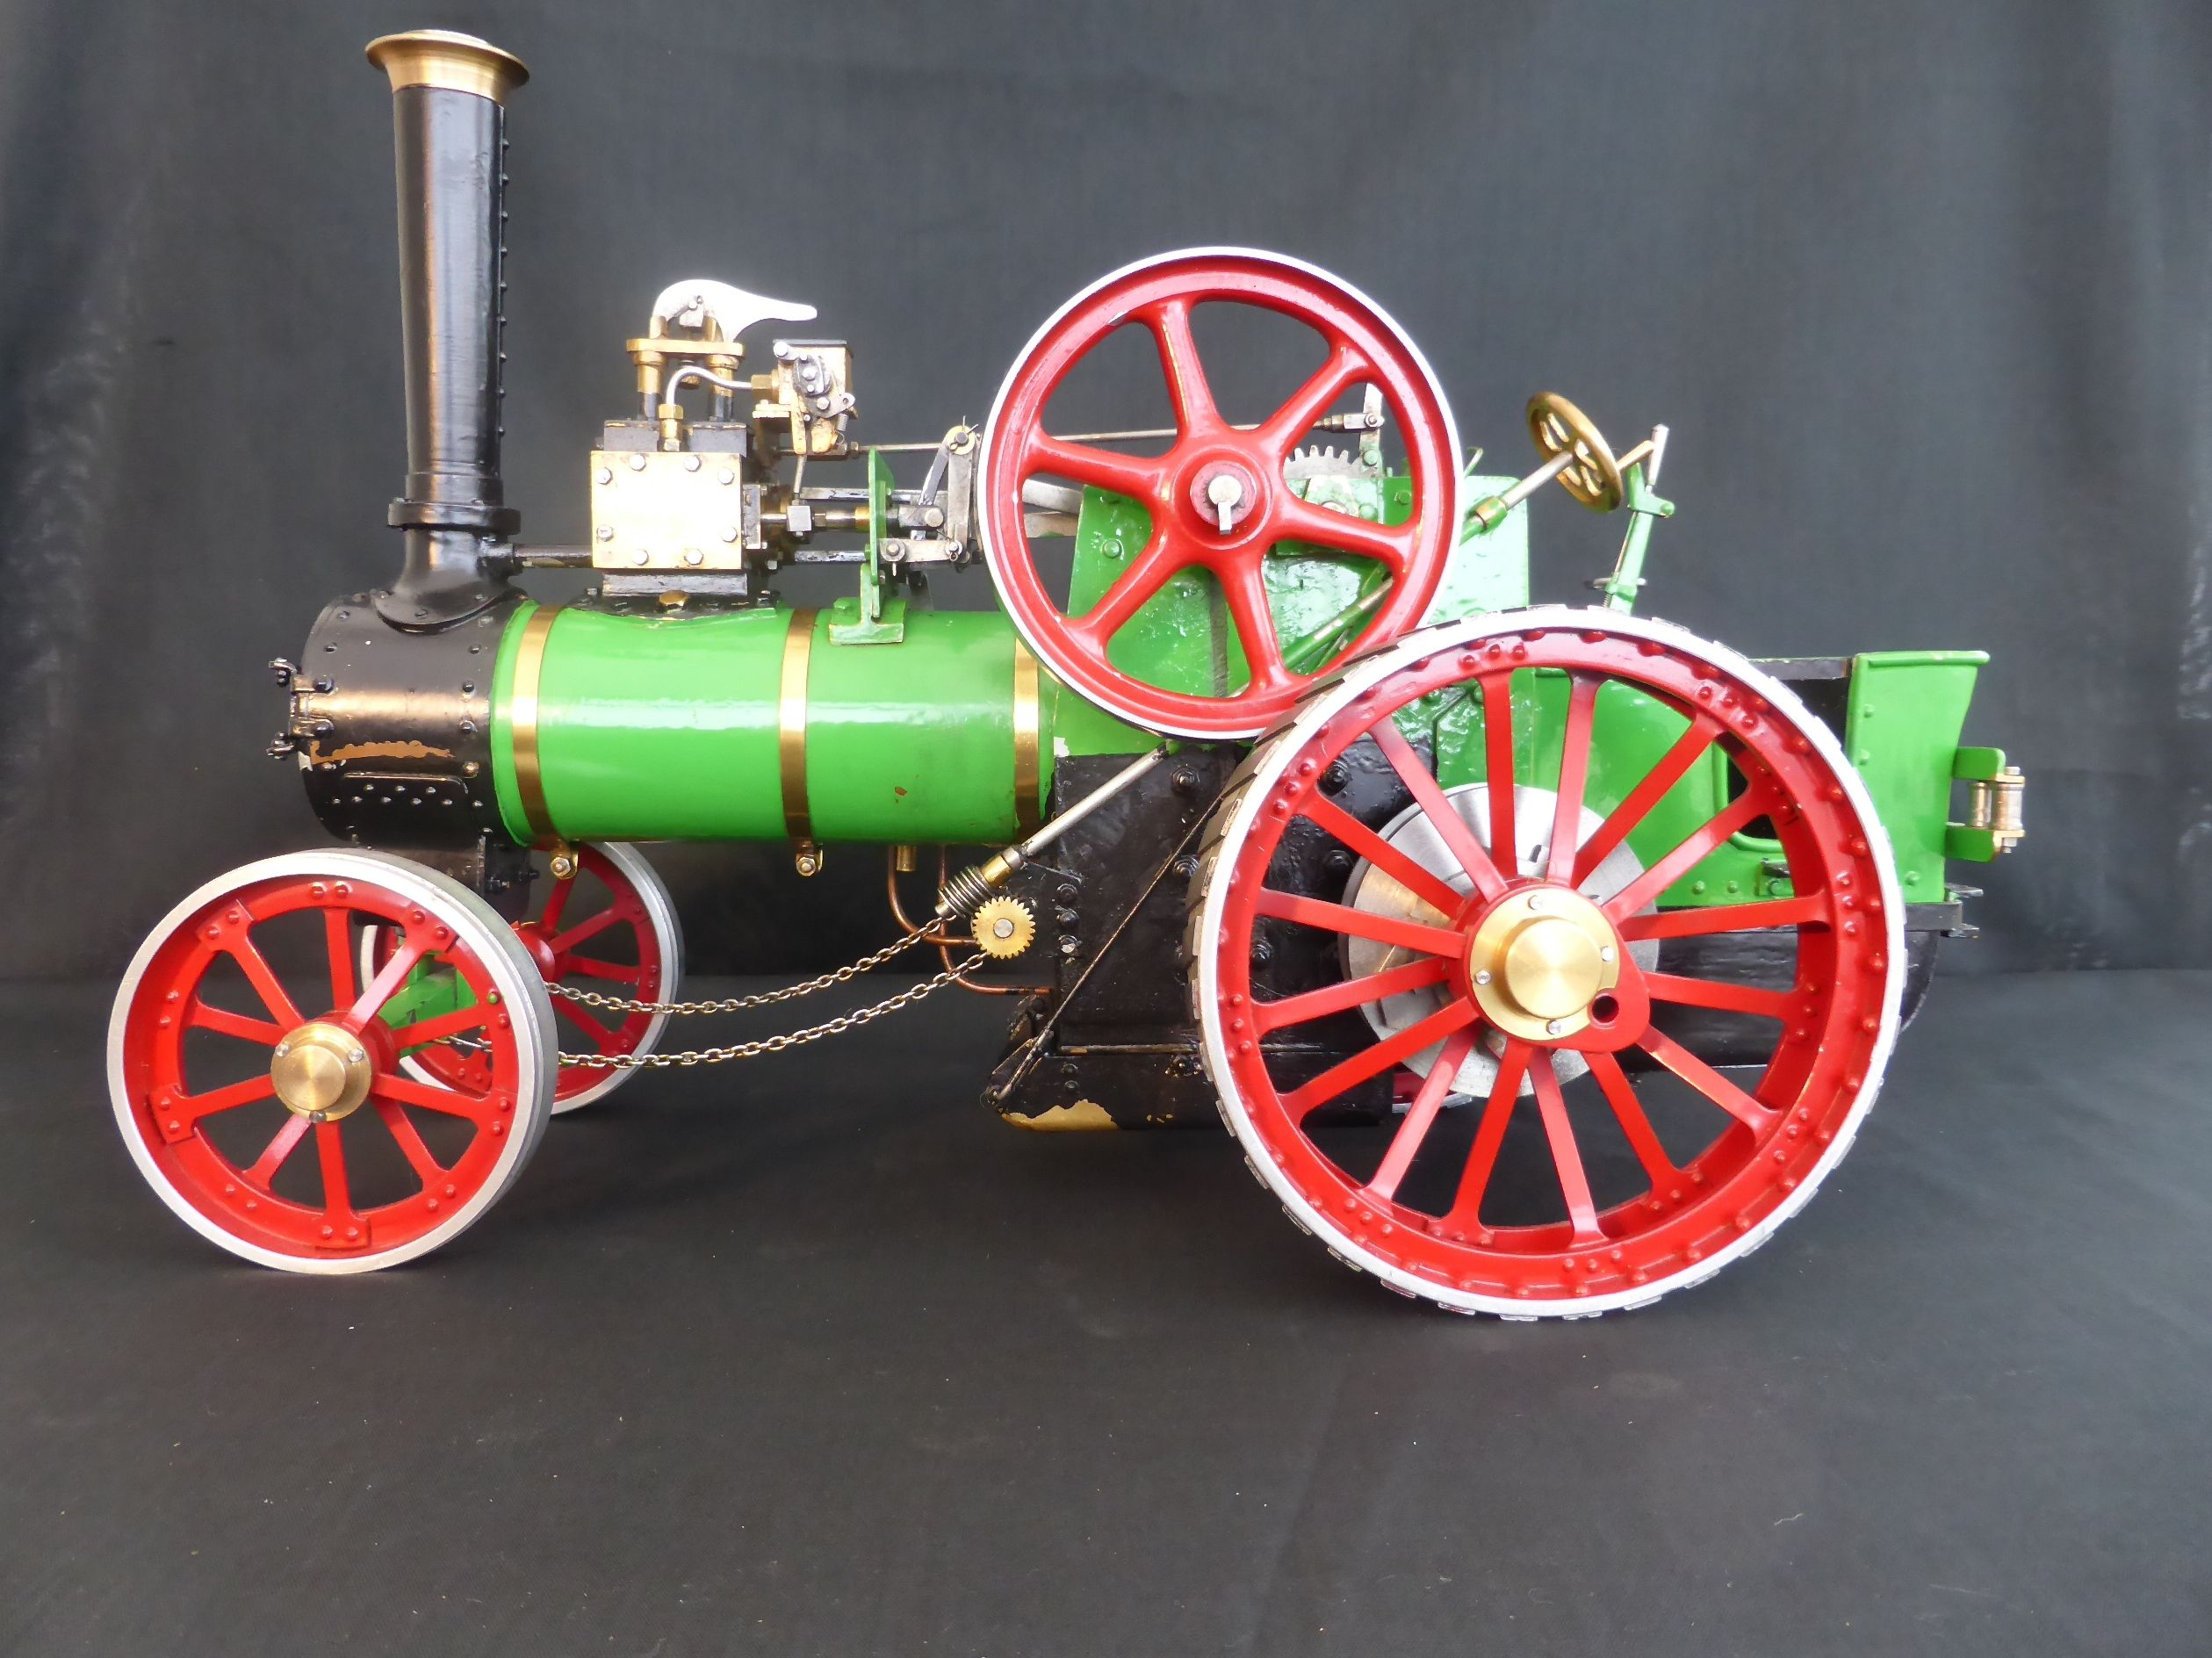 22 best MINIATURE STEAM ENGINES & BURRELLS images on Pinterest